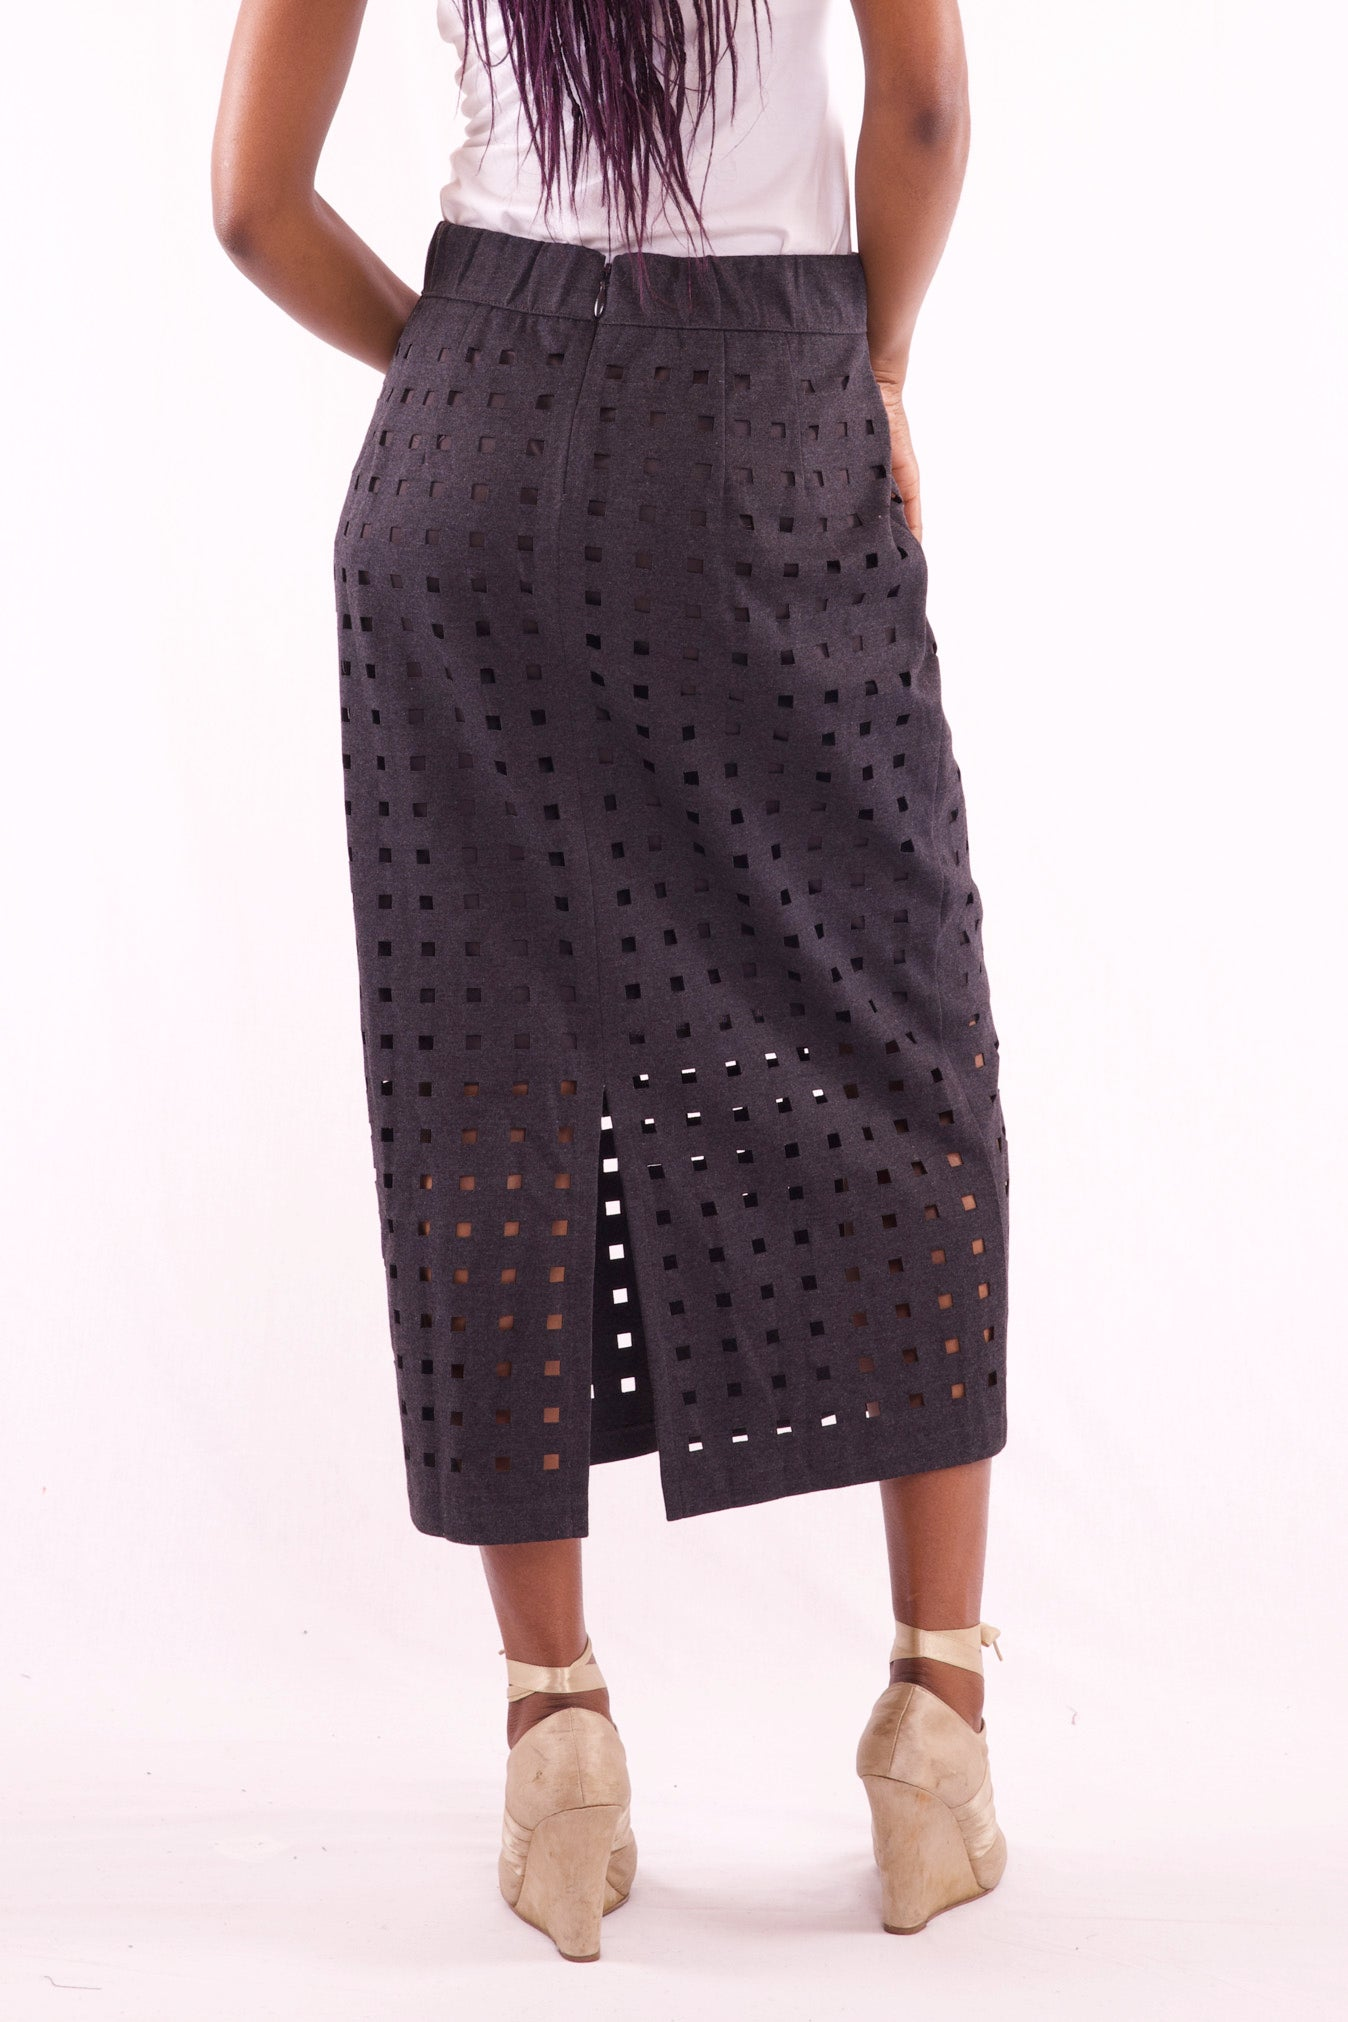 Midi Black Skirt - Hillmarten